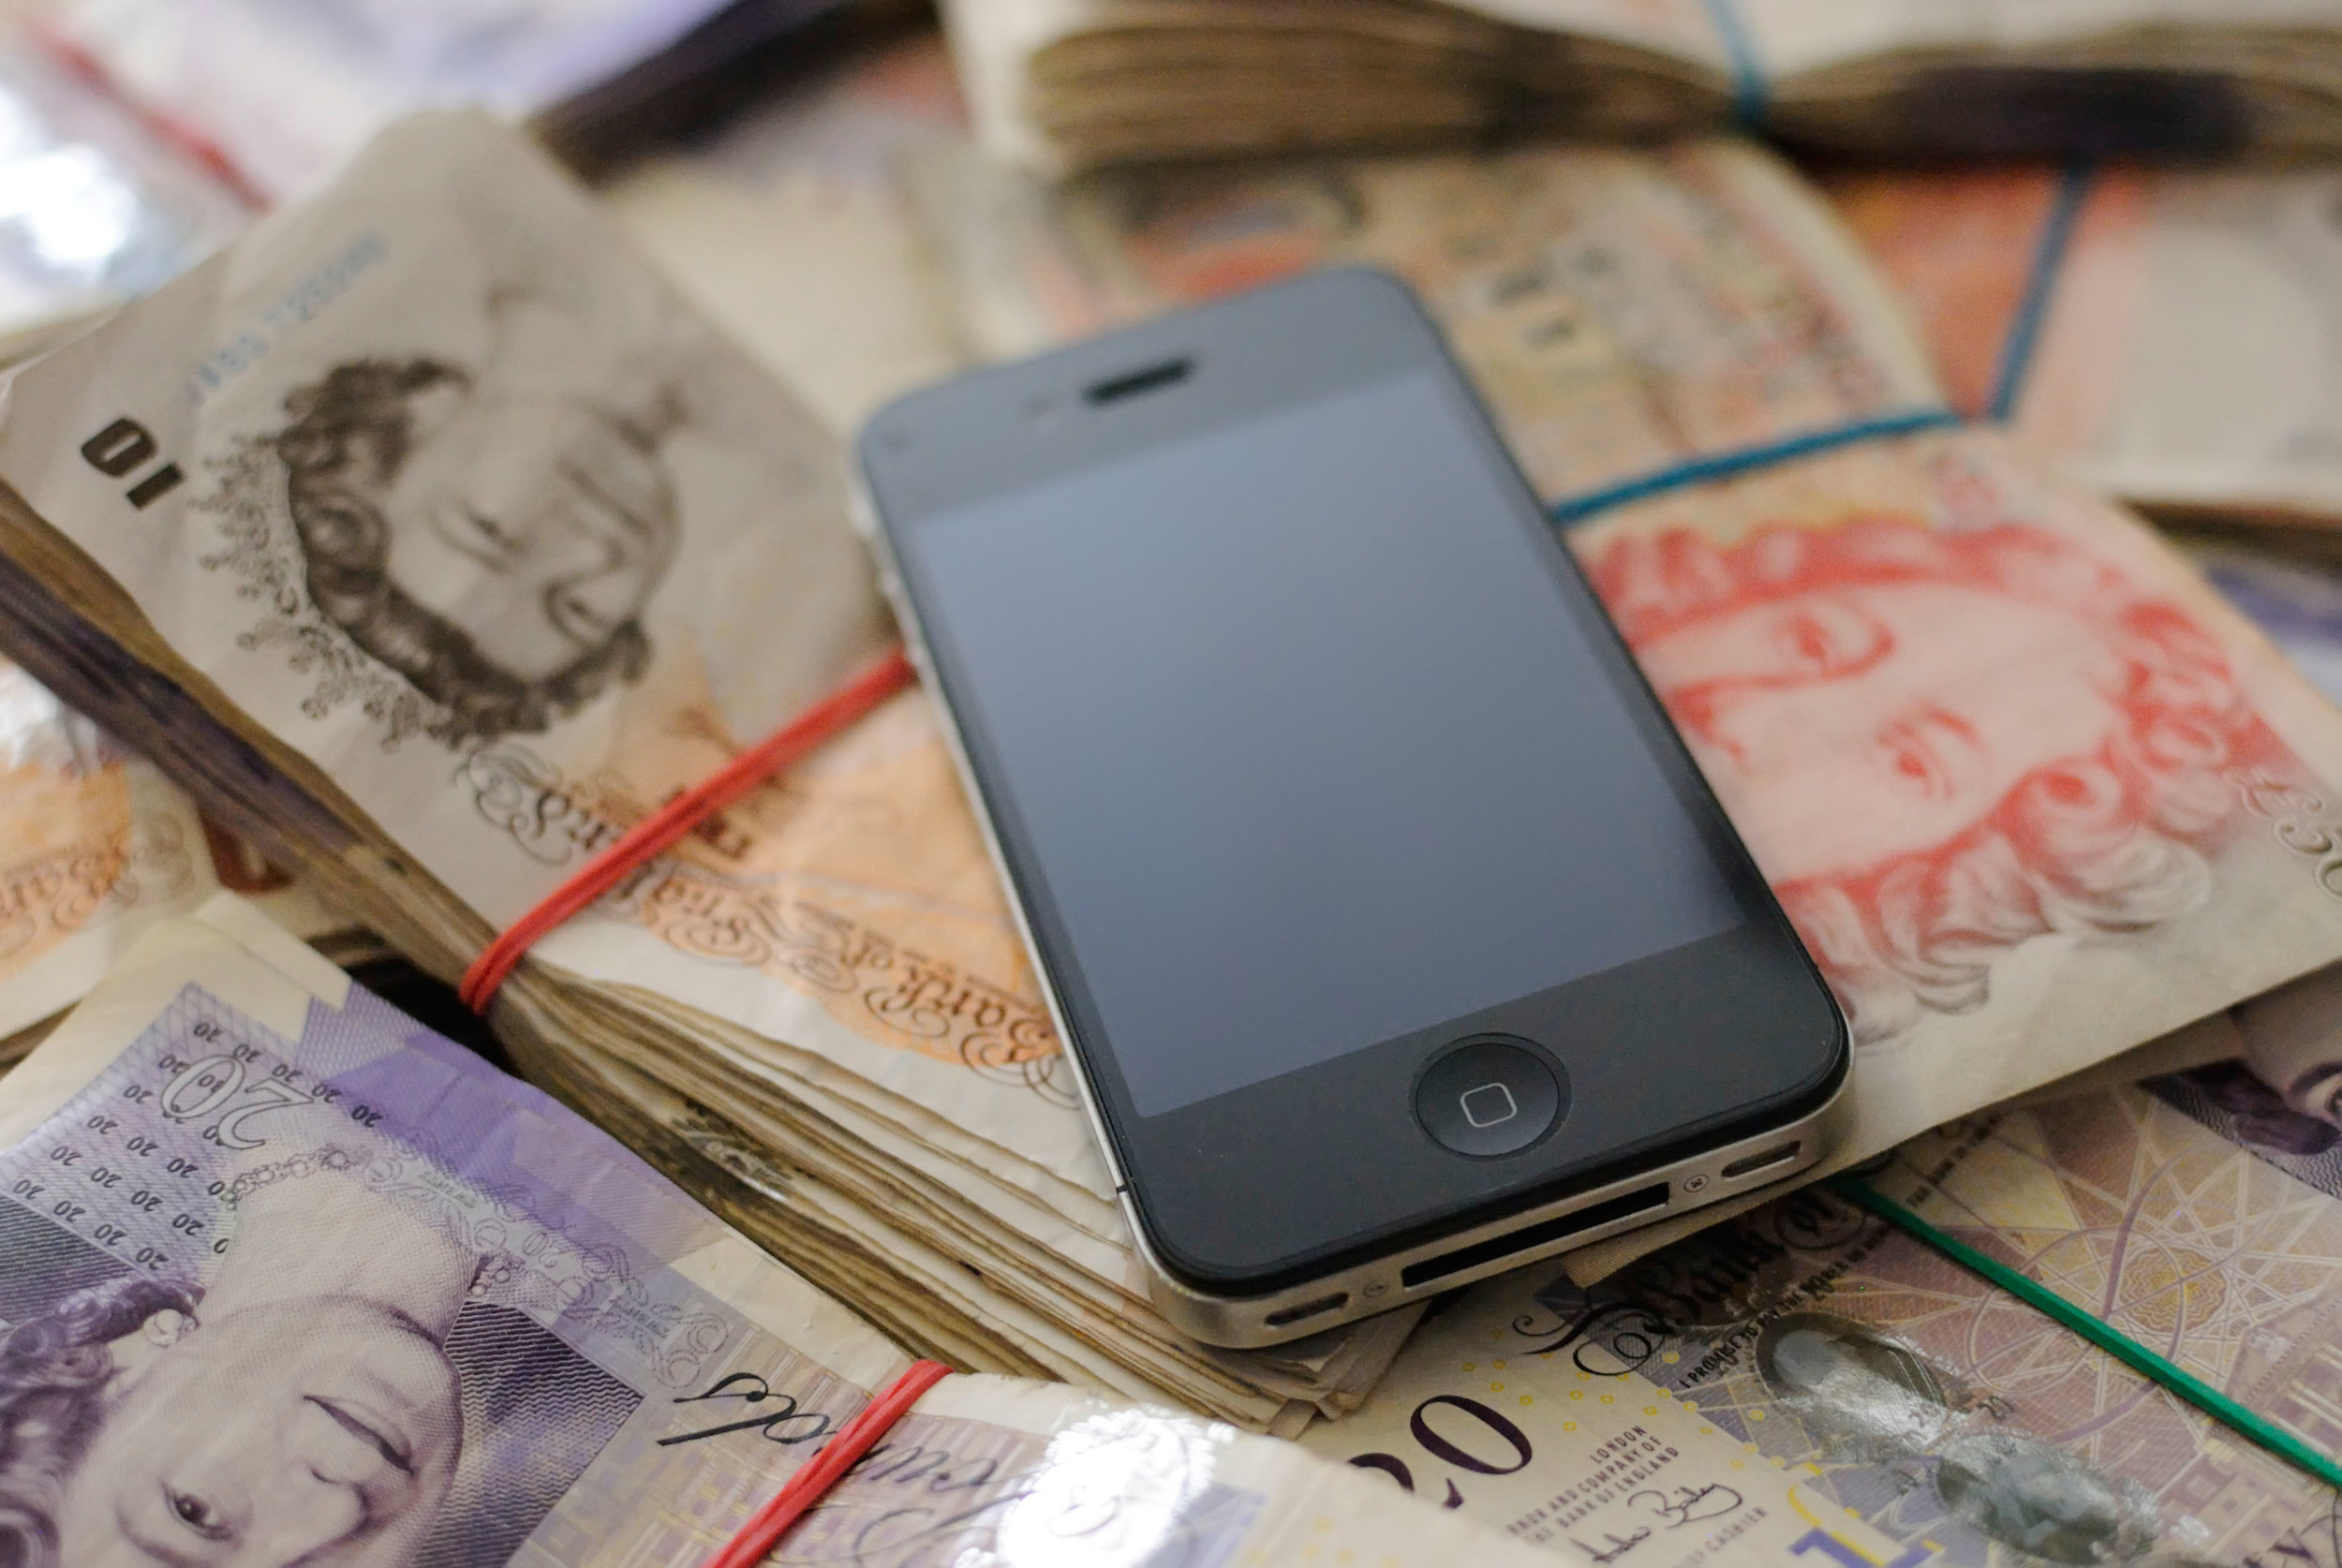 Natasha manages her finances using the Yolt app on her phone